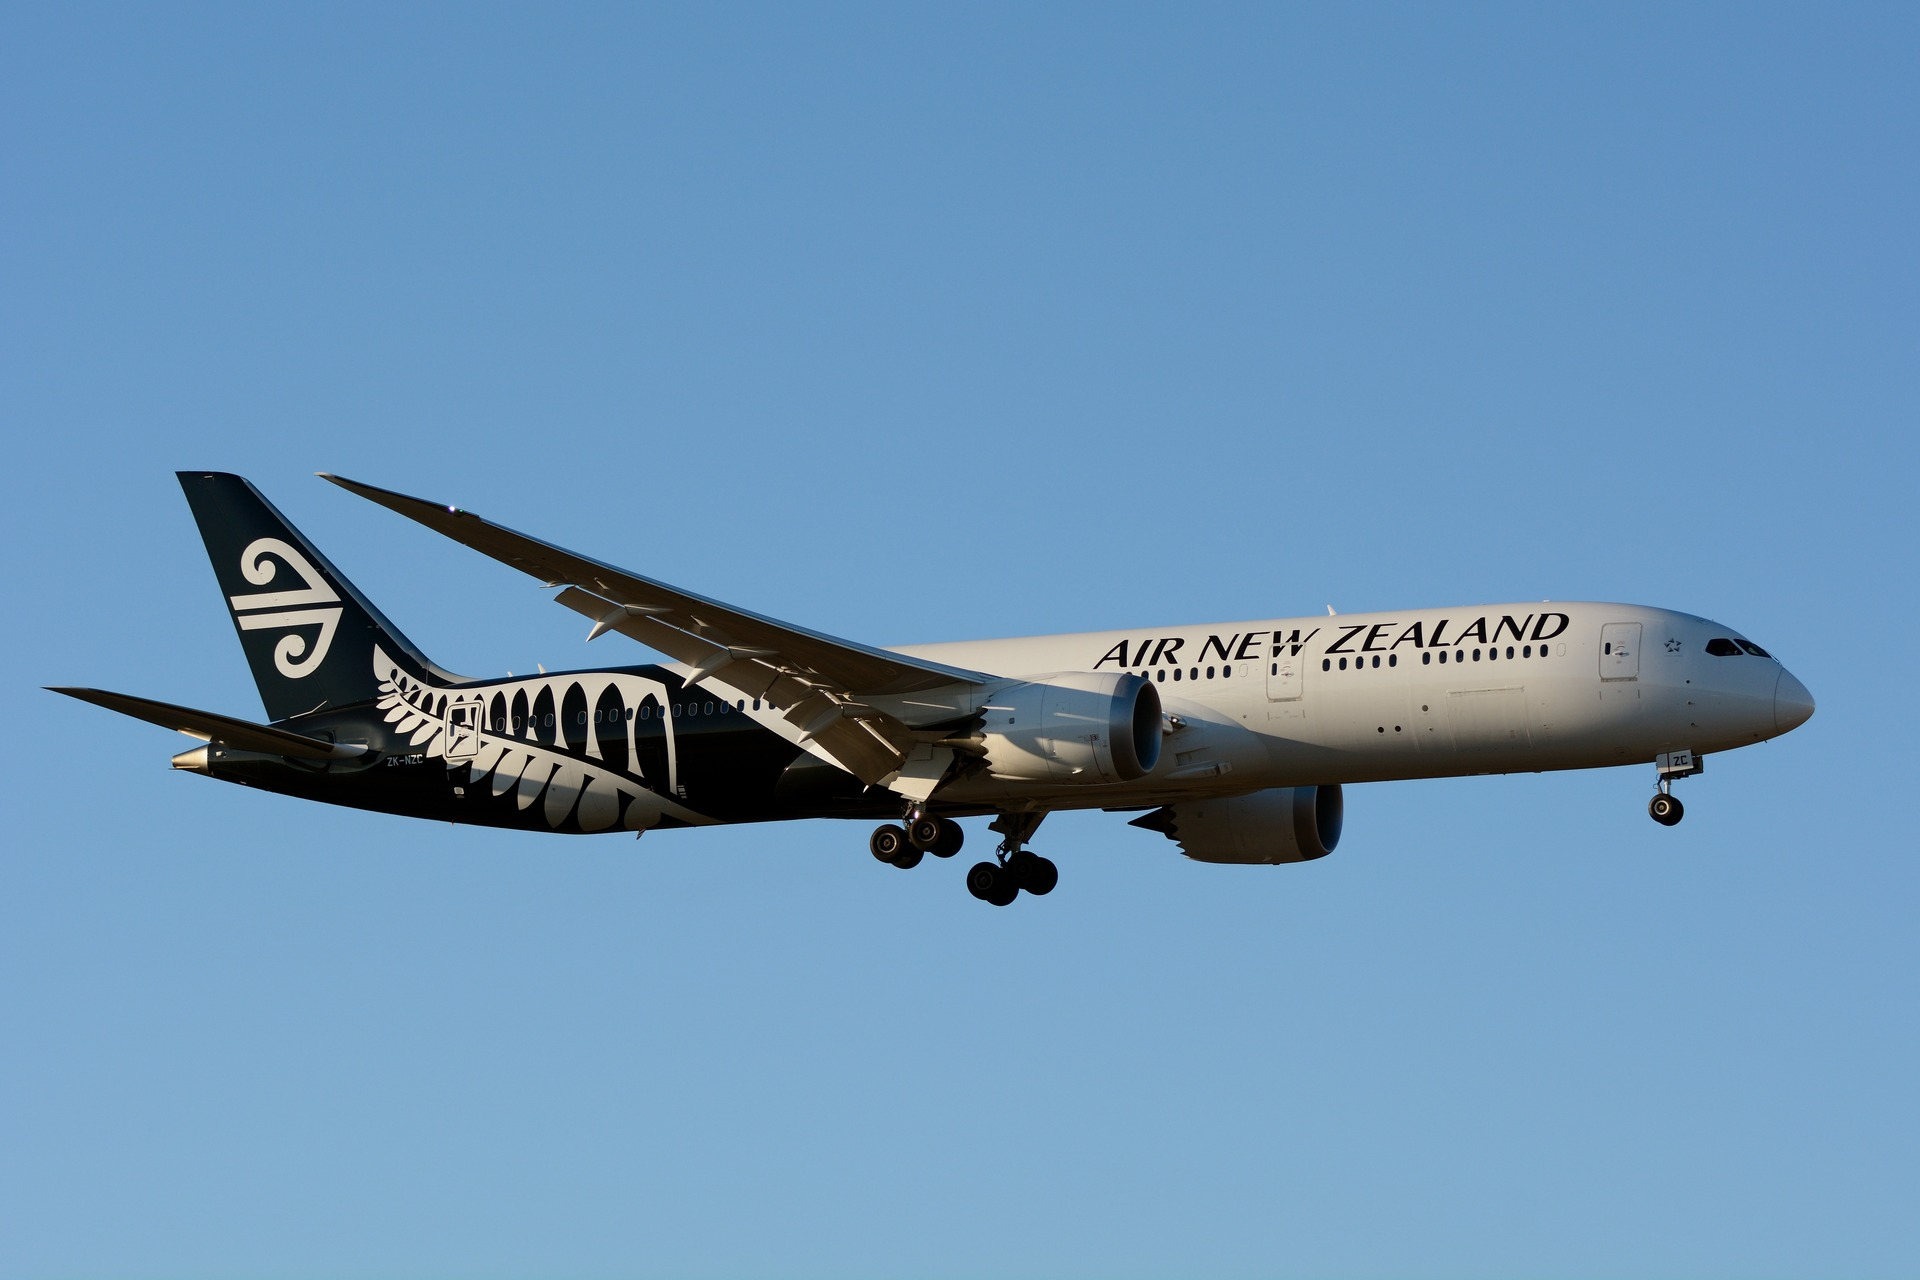 Woman booted from Air New Zealand flight after refusing to watch safety video